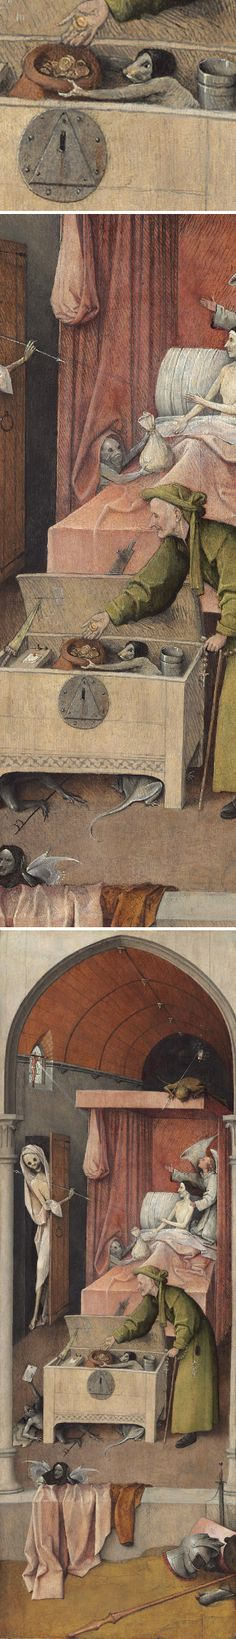 "Hieronymous Bosch ""Death and the Miser"""